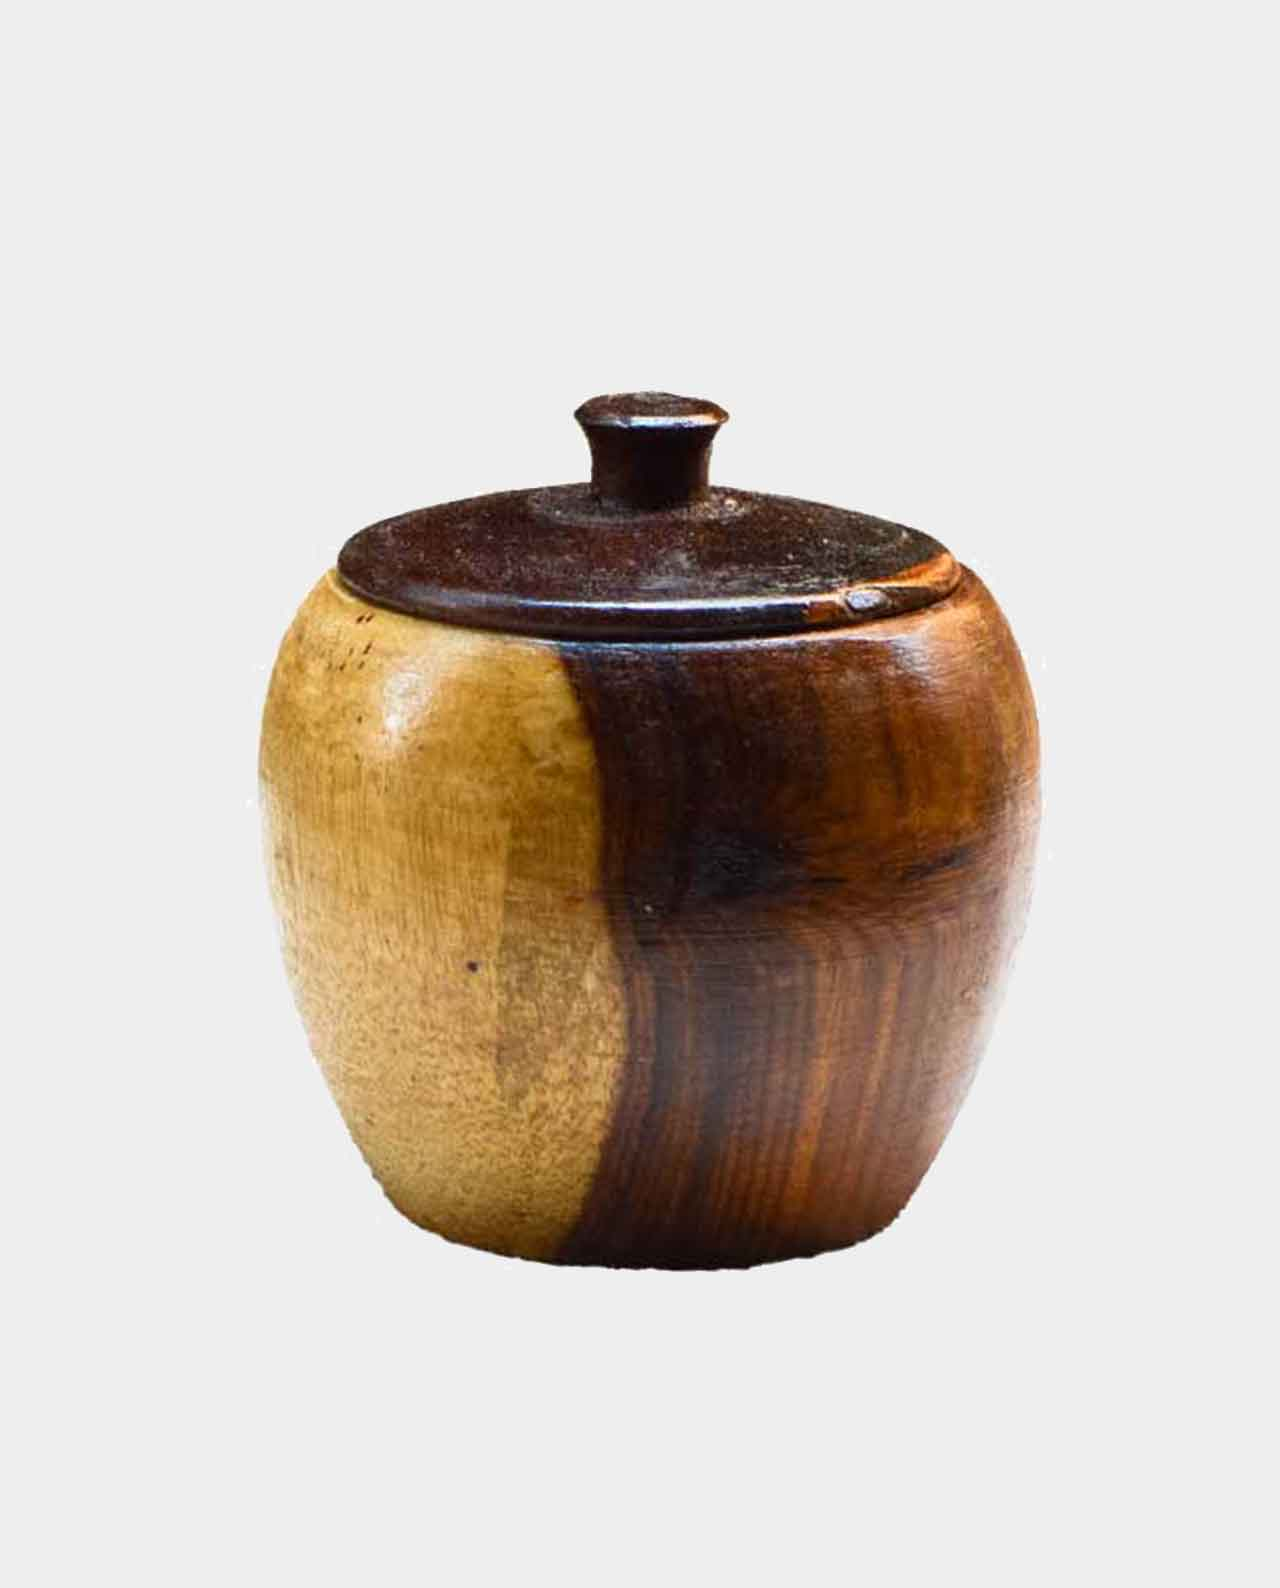 1 piece Spice jar with lid Handmade of Asersus wooden 9 cm